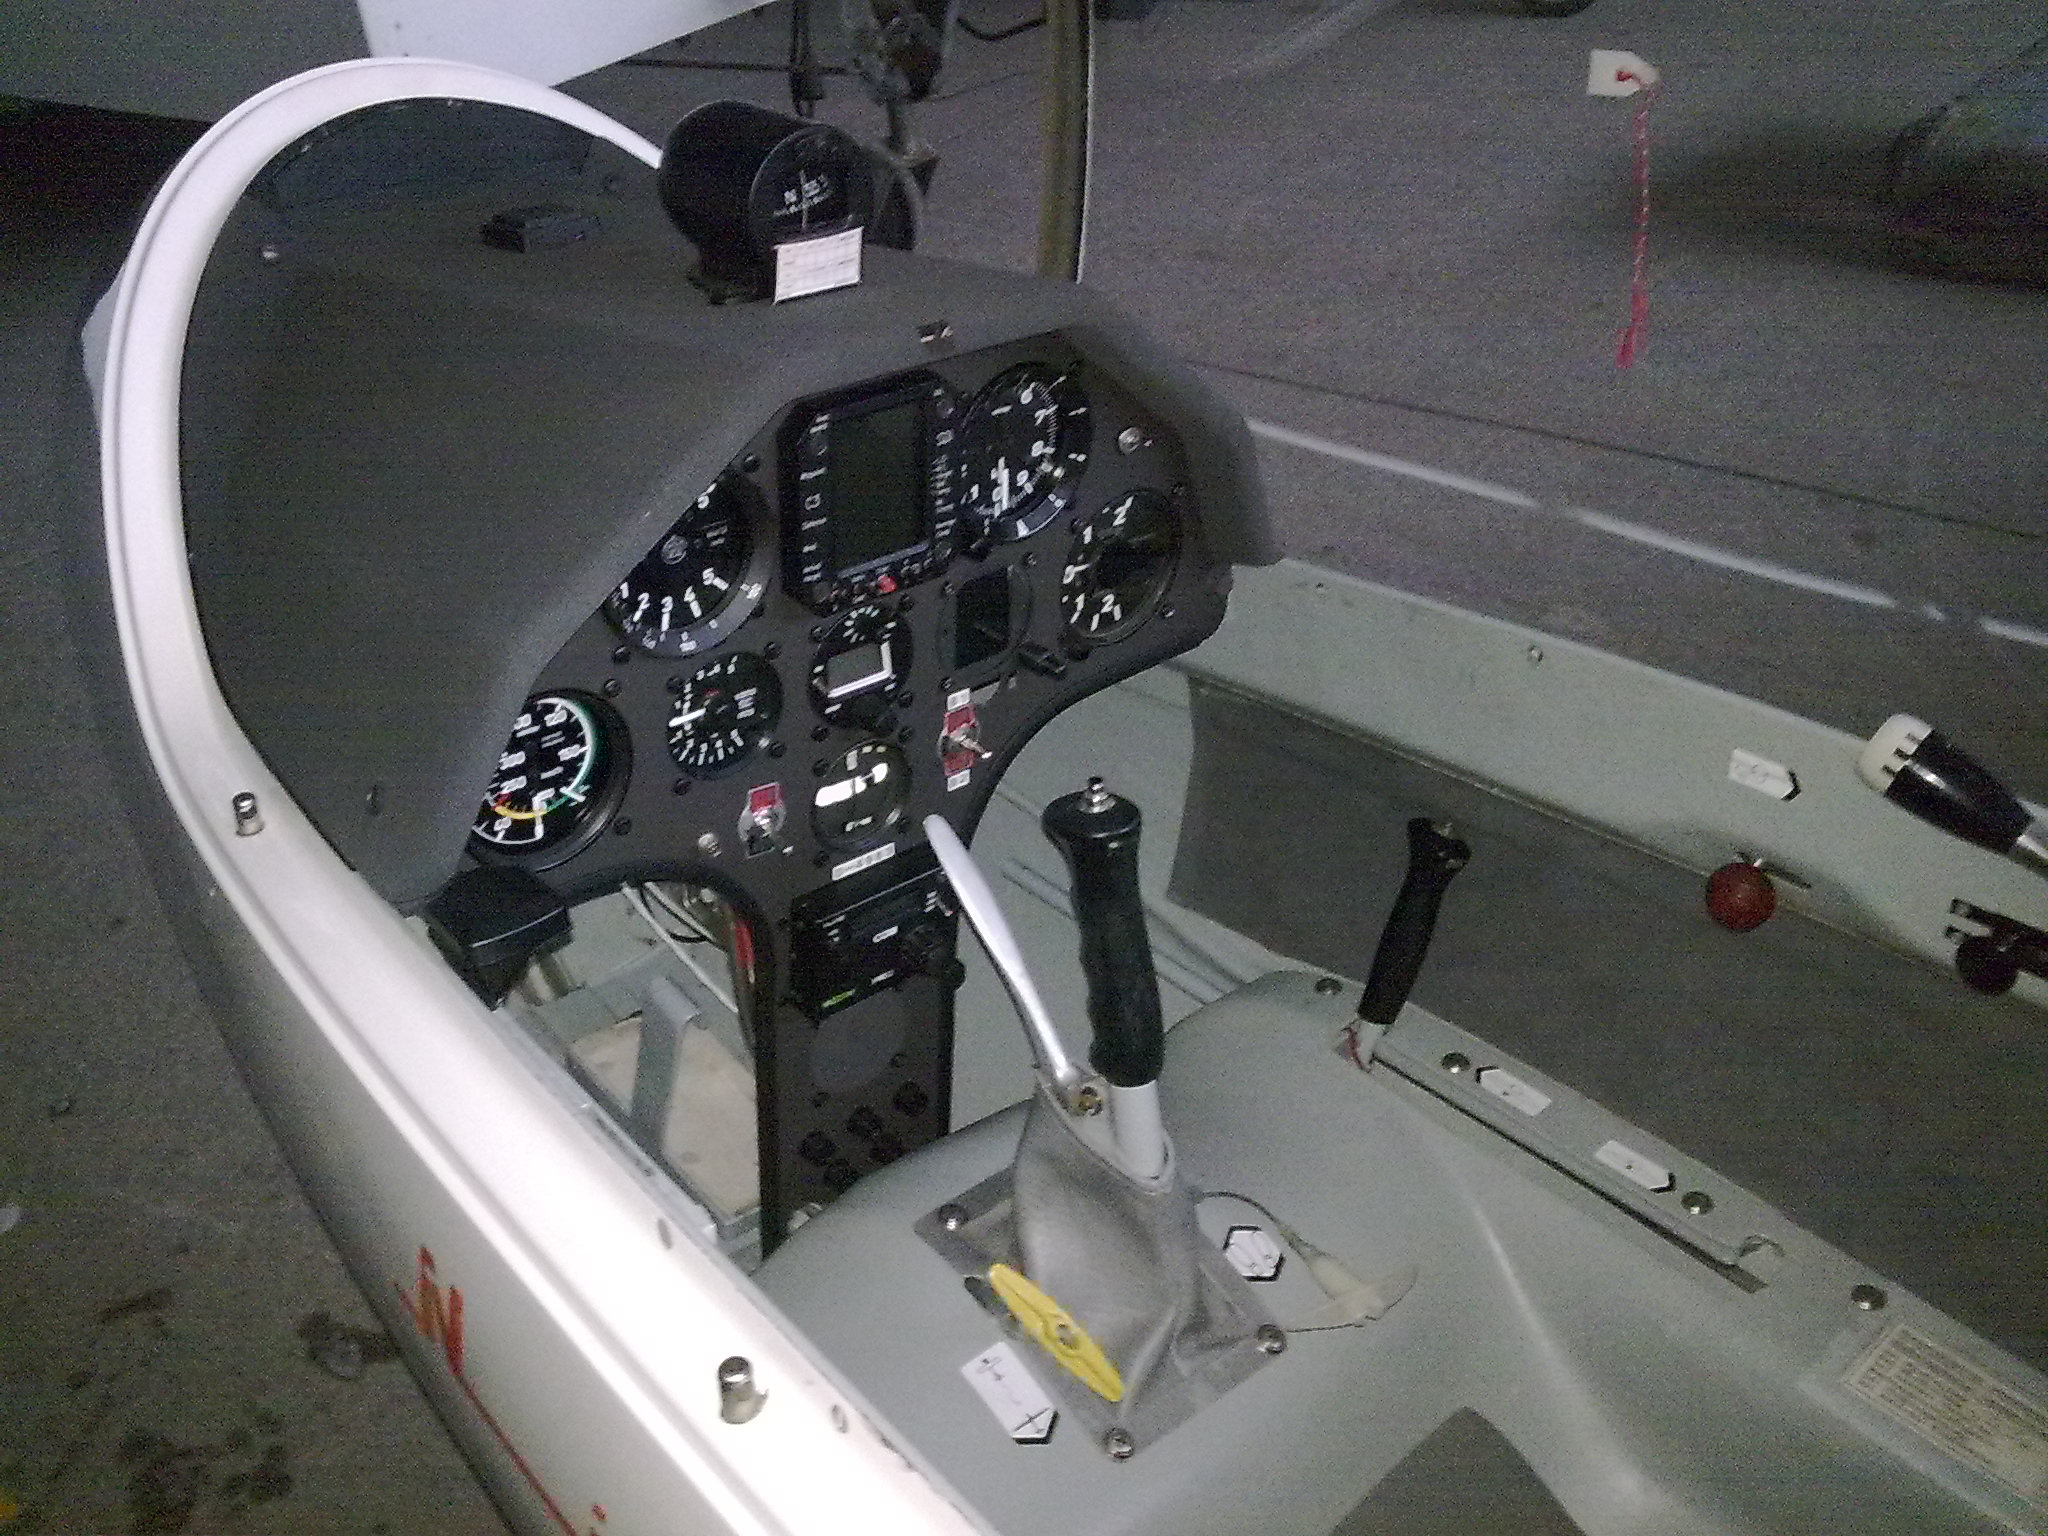 This is the cockpit of the upgraded B1B Bone bomber